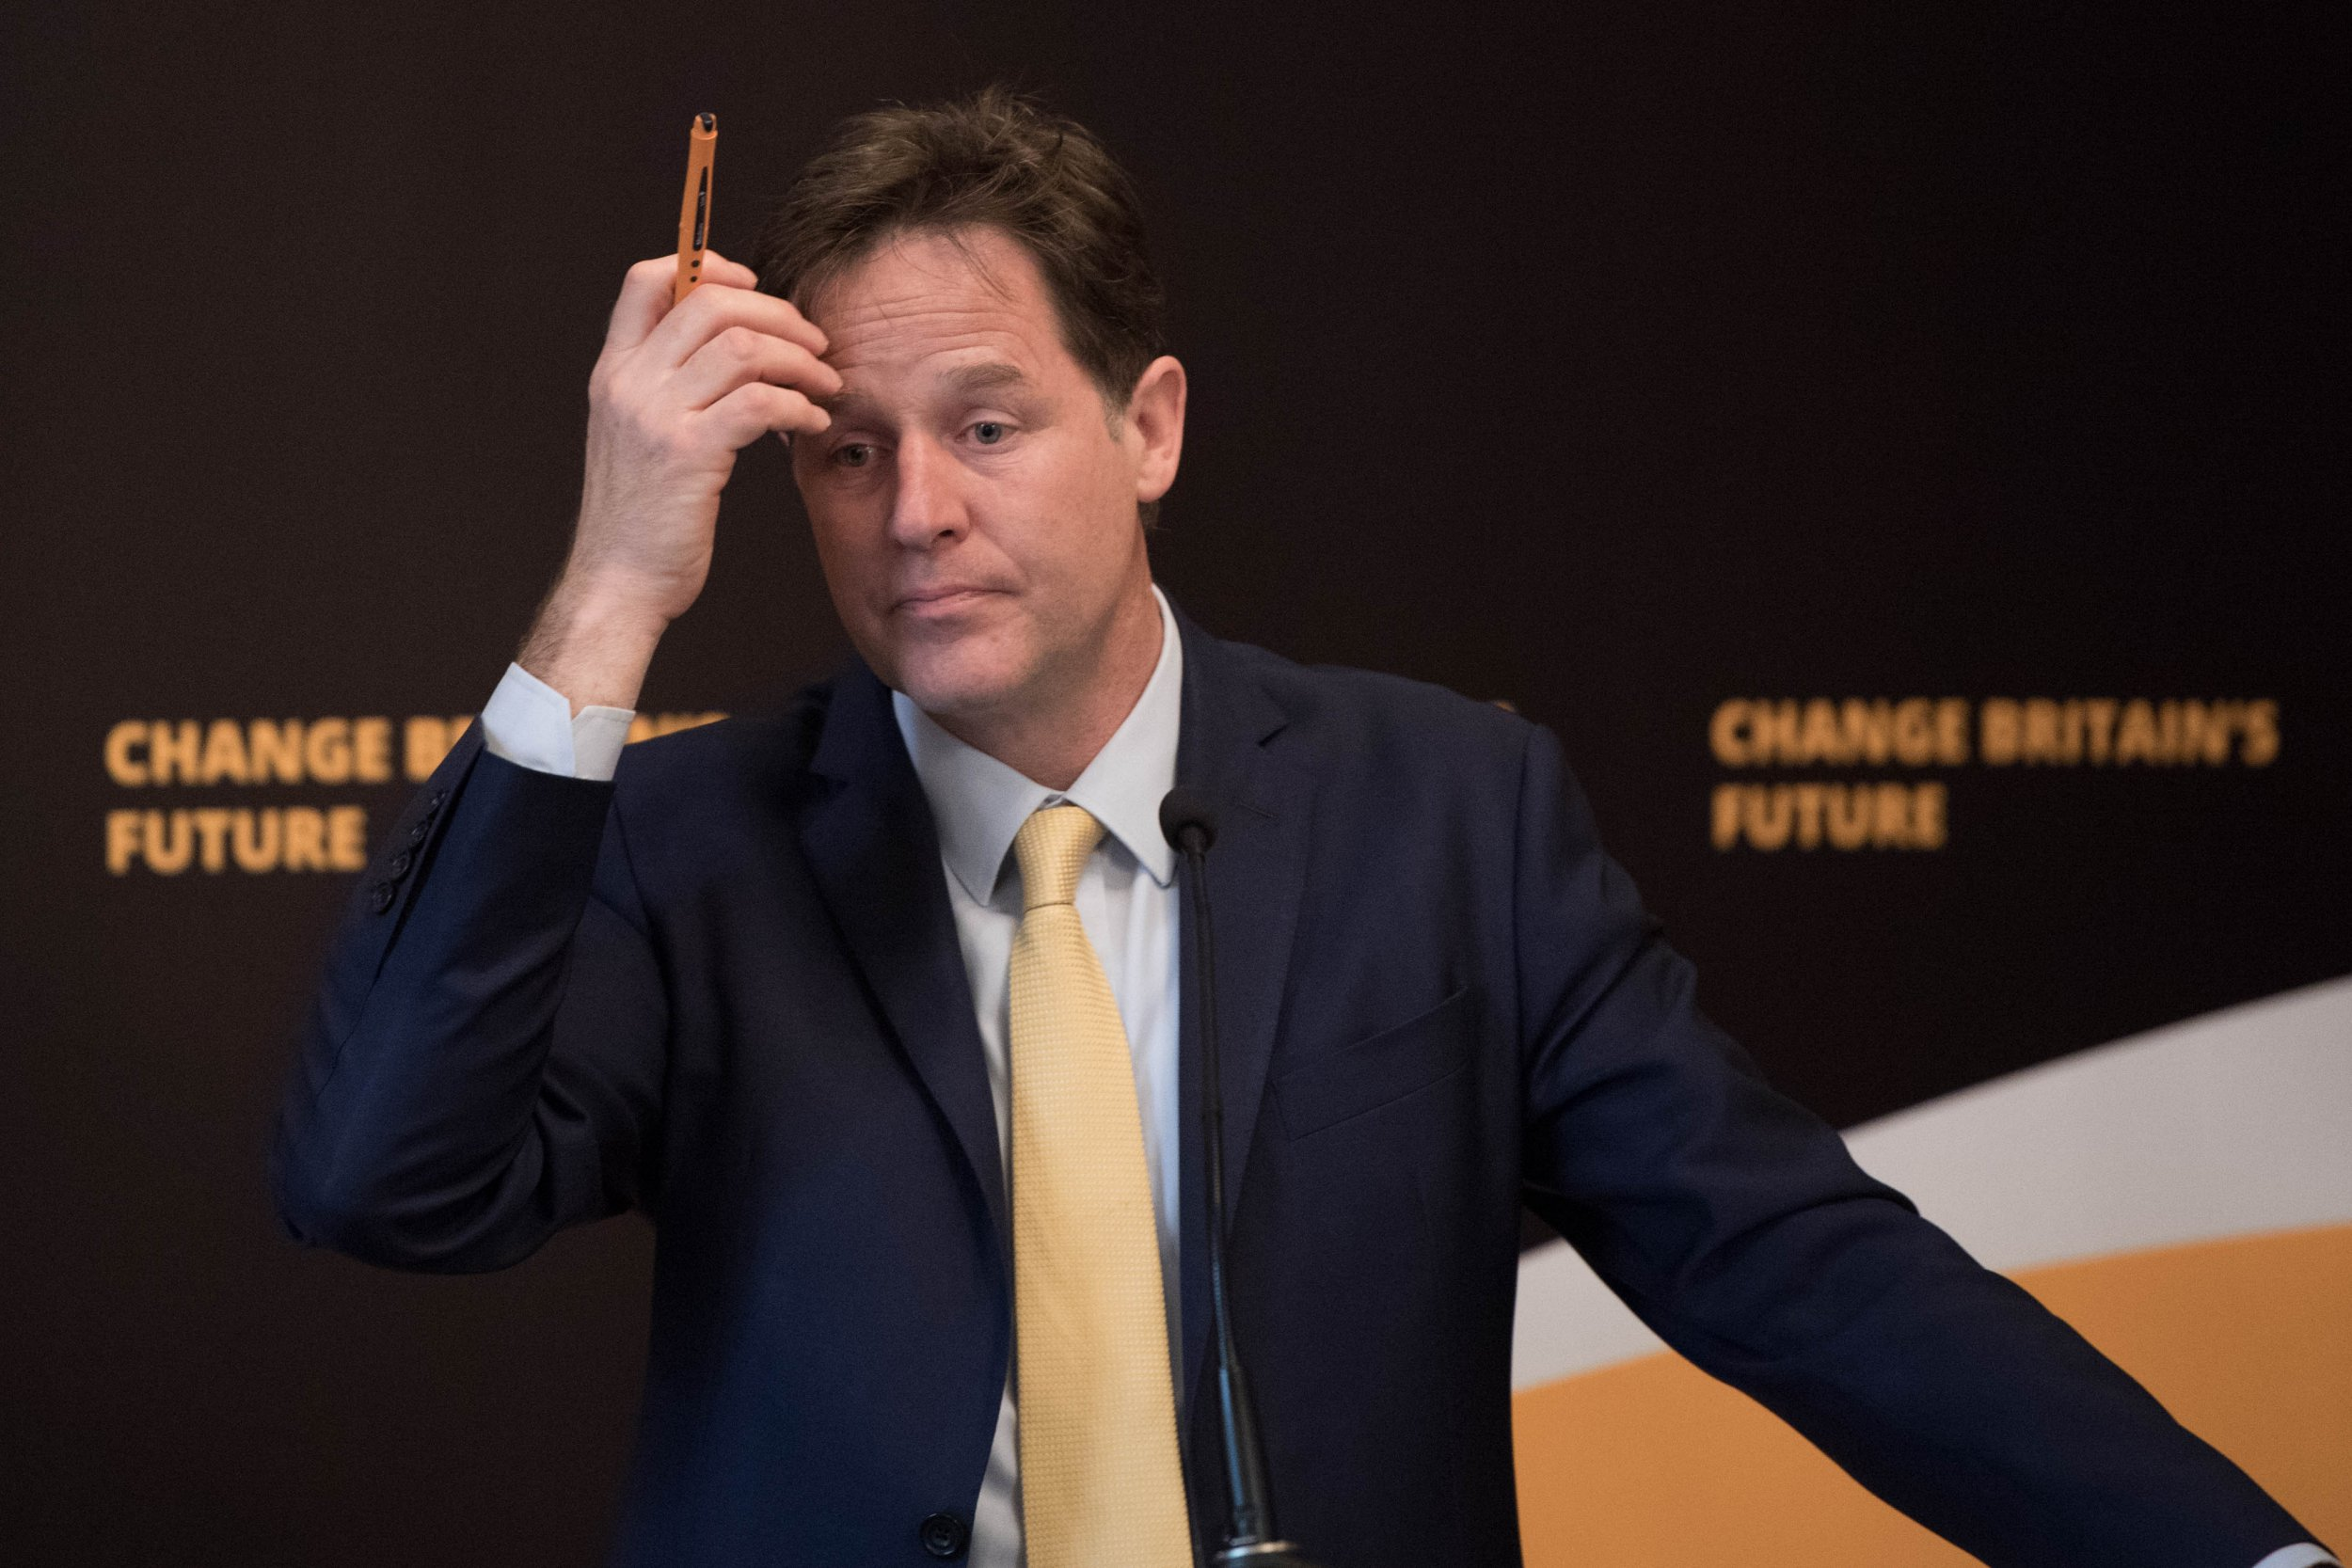 Former Lib Dem leader Nick Clegg says he lost his seat because he is stubbornly 'anti-Brexit'